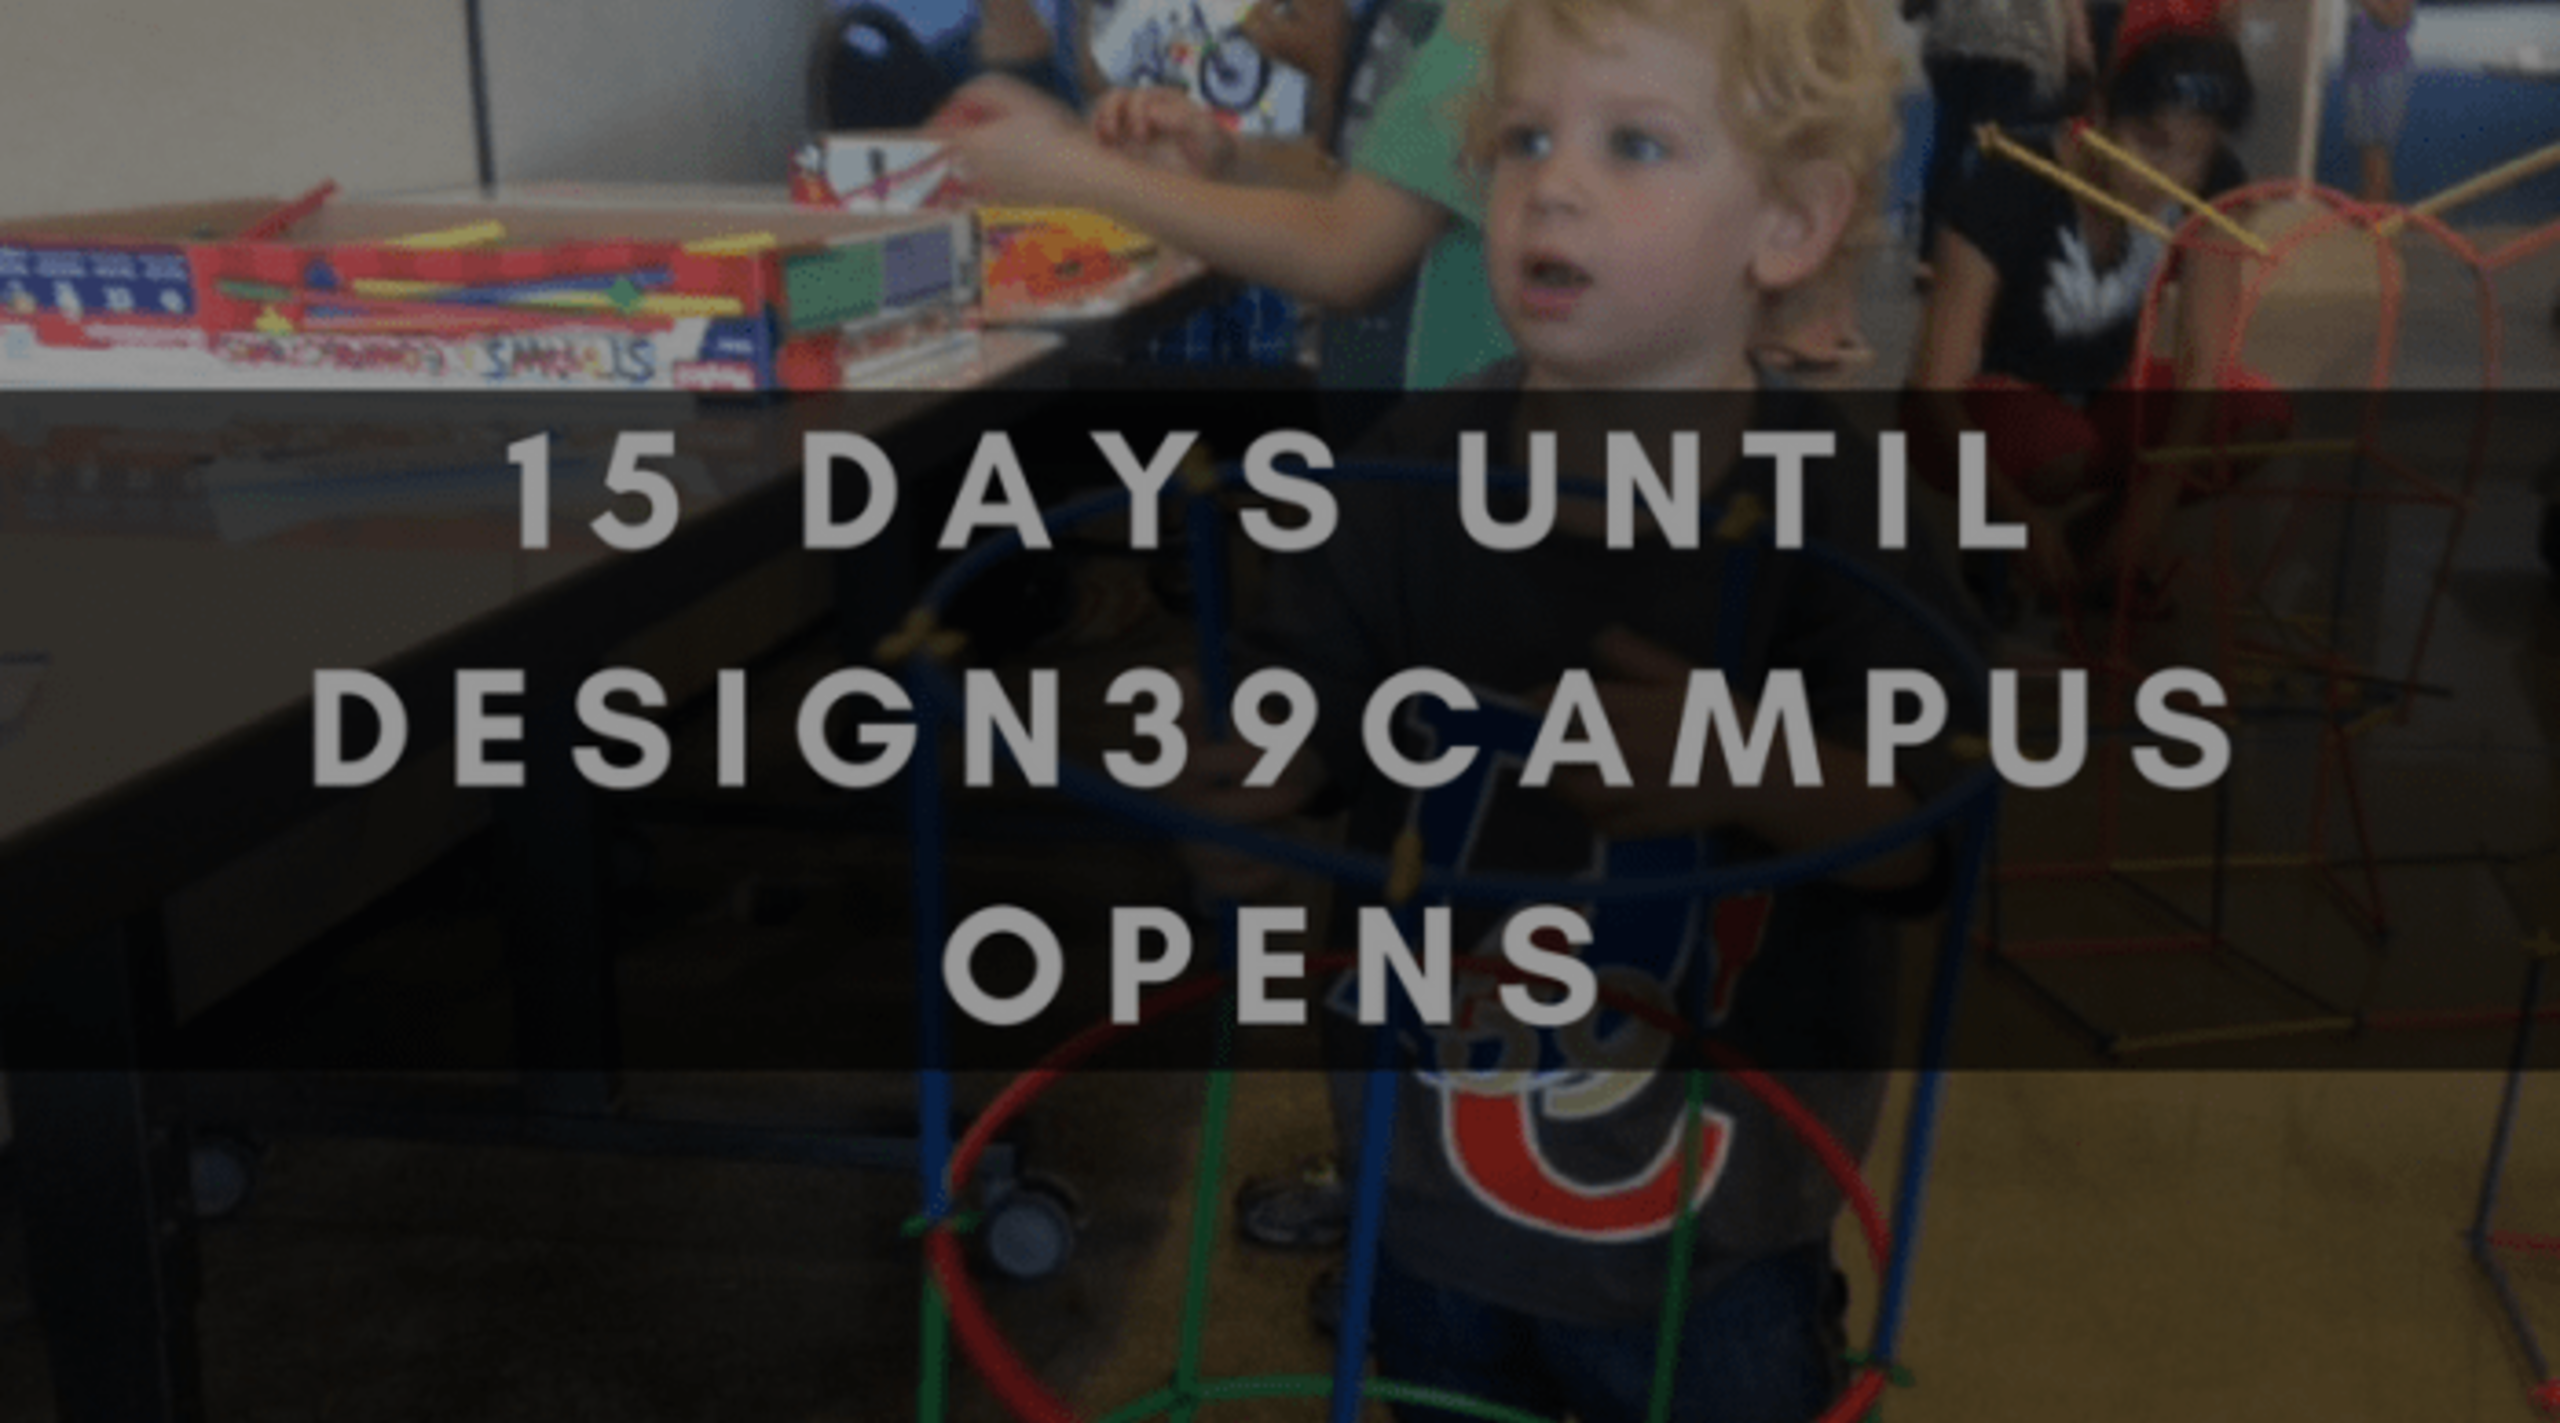 15 DAYS UNTIL DESIGN39CAMPUS OPENS